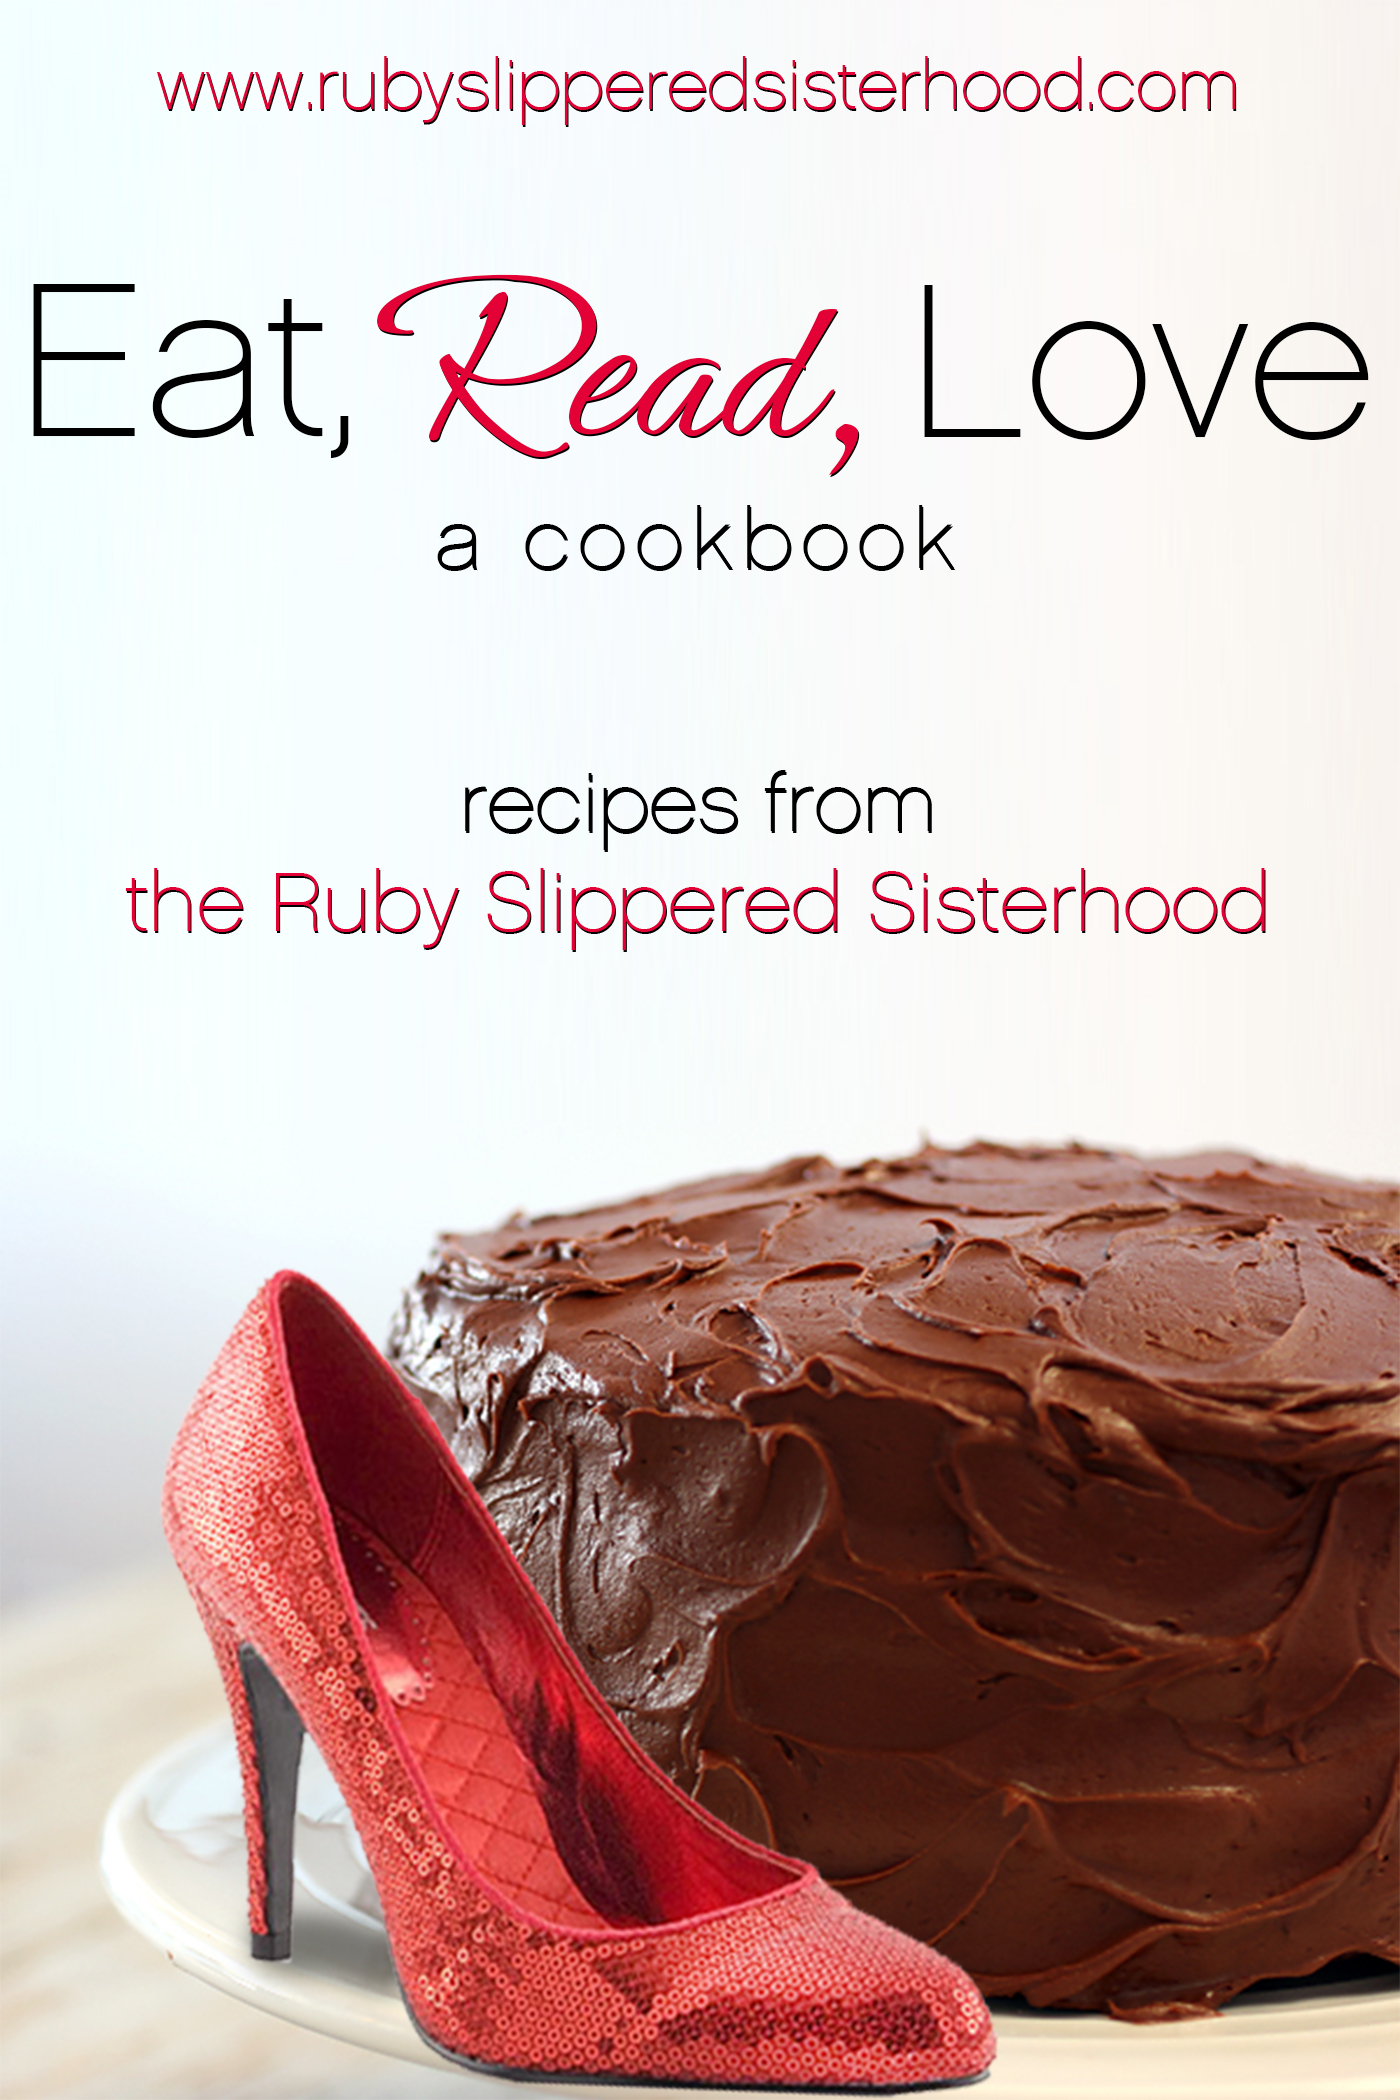 Eat, Read, Love By: Amanda Brice (Editor),Kim Law (Editor),Ruby-Slippered Sisterhood